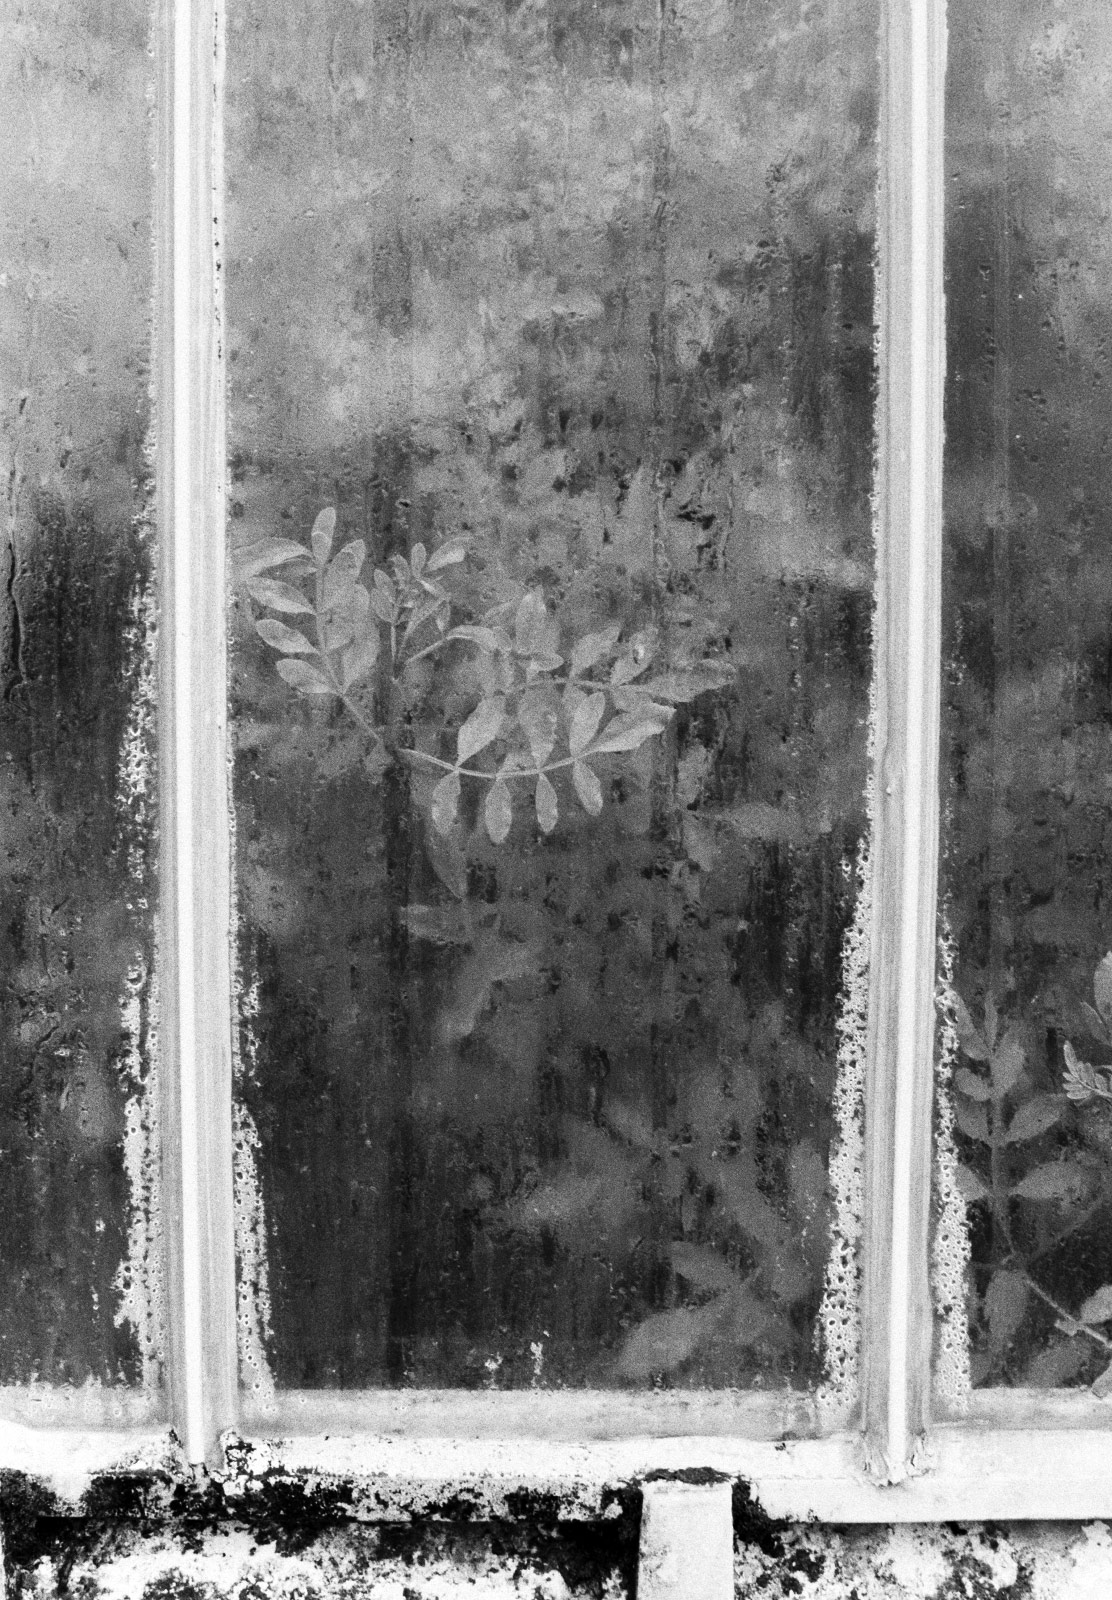 Leaves against steamy window